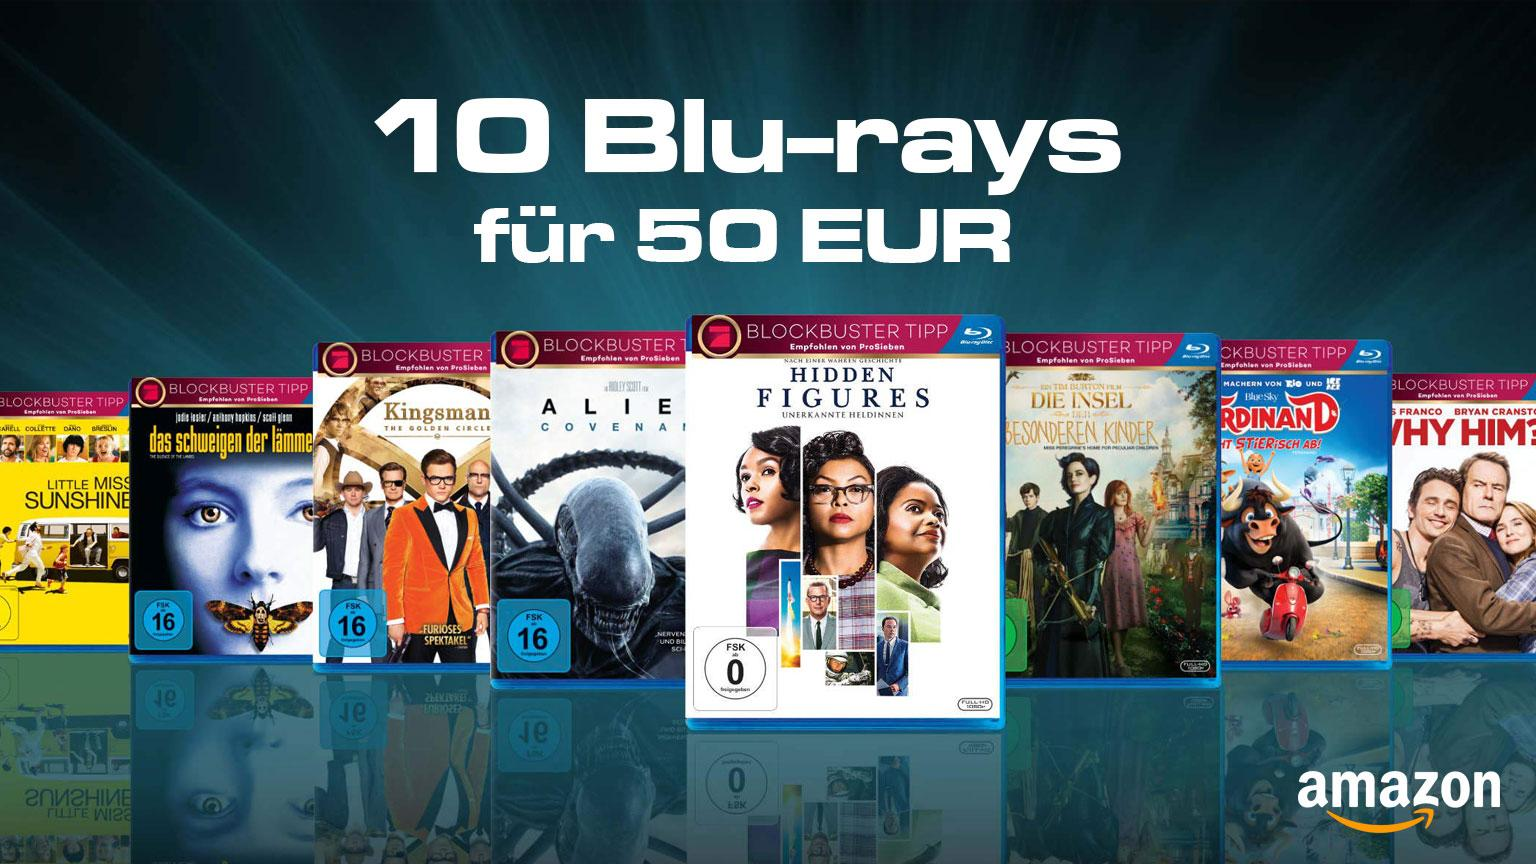 Amazon.de Deal 10 Blu-ray für 50 EUR Mai 2019 Artikelbild